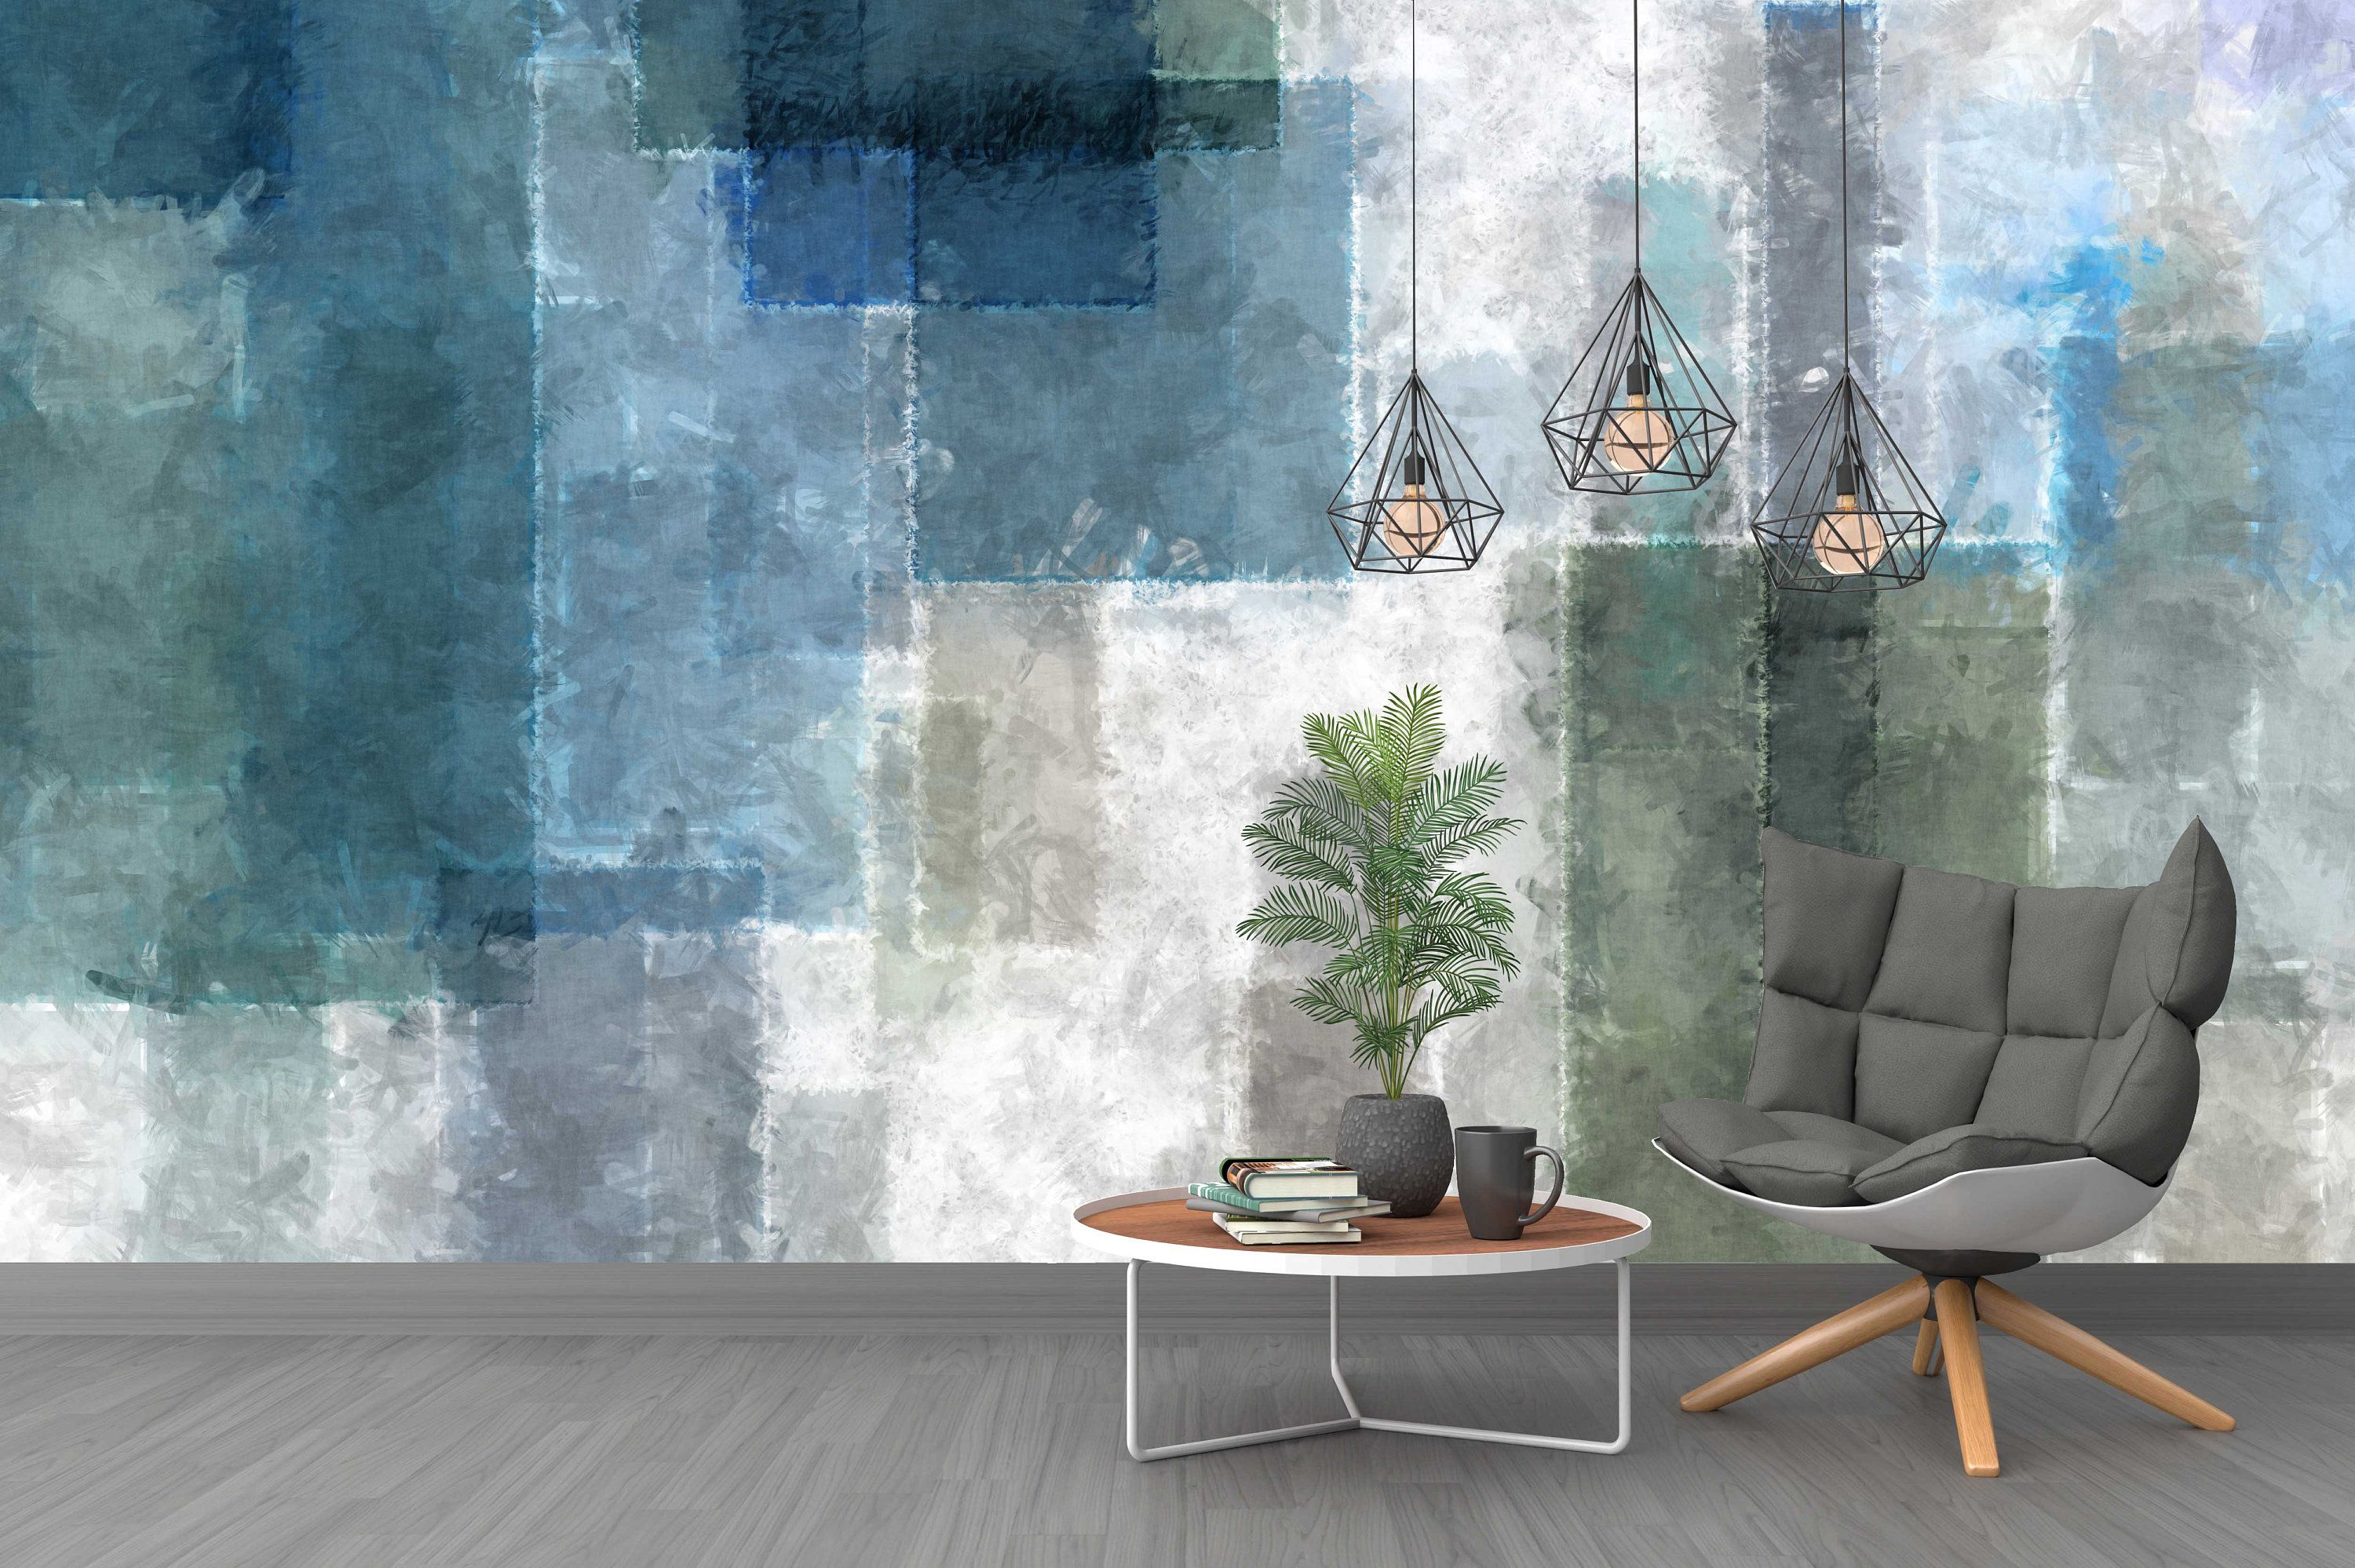 Bumpy Glass Design Colorful Abstract Background Wallpaper Self Etsy Glass Design Grey Wallpaper Home Decor Wall Art